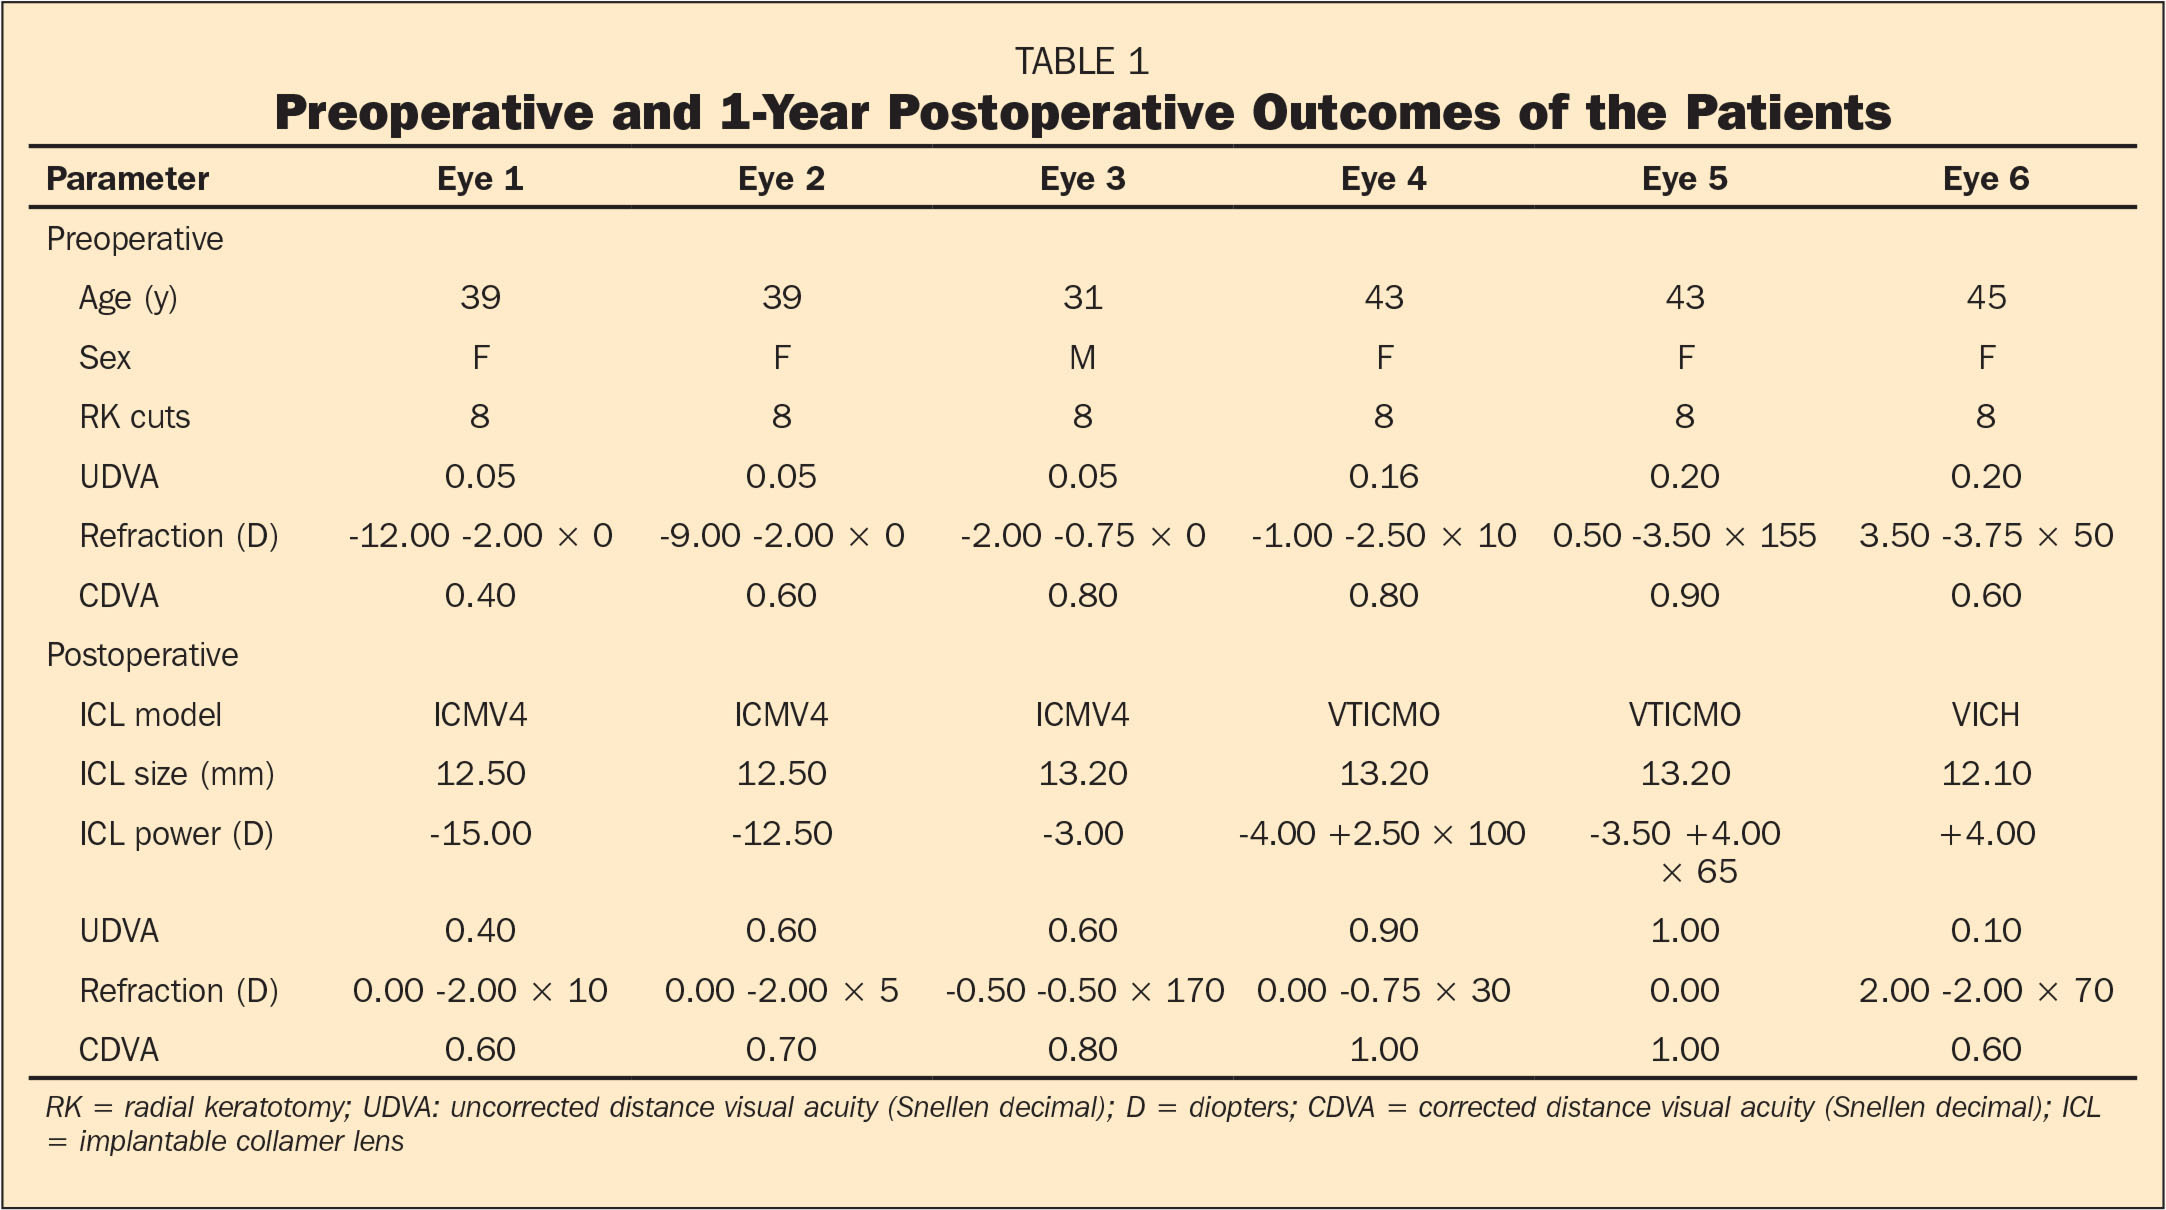 Preoperative and 1-Year Postoperative Outcomes of the Patients